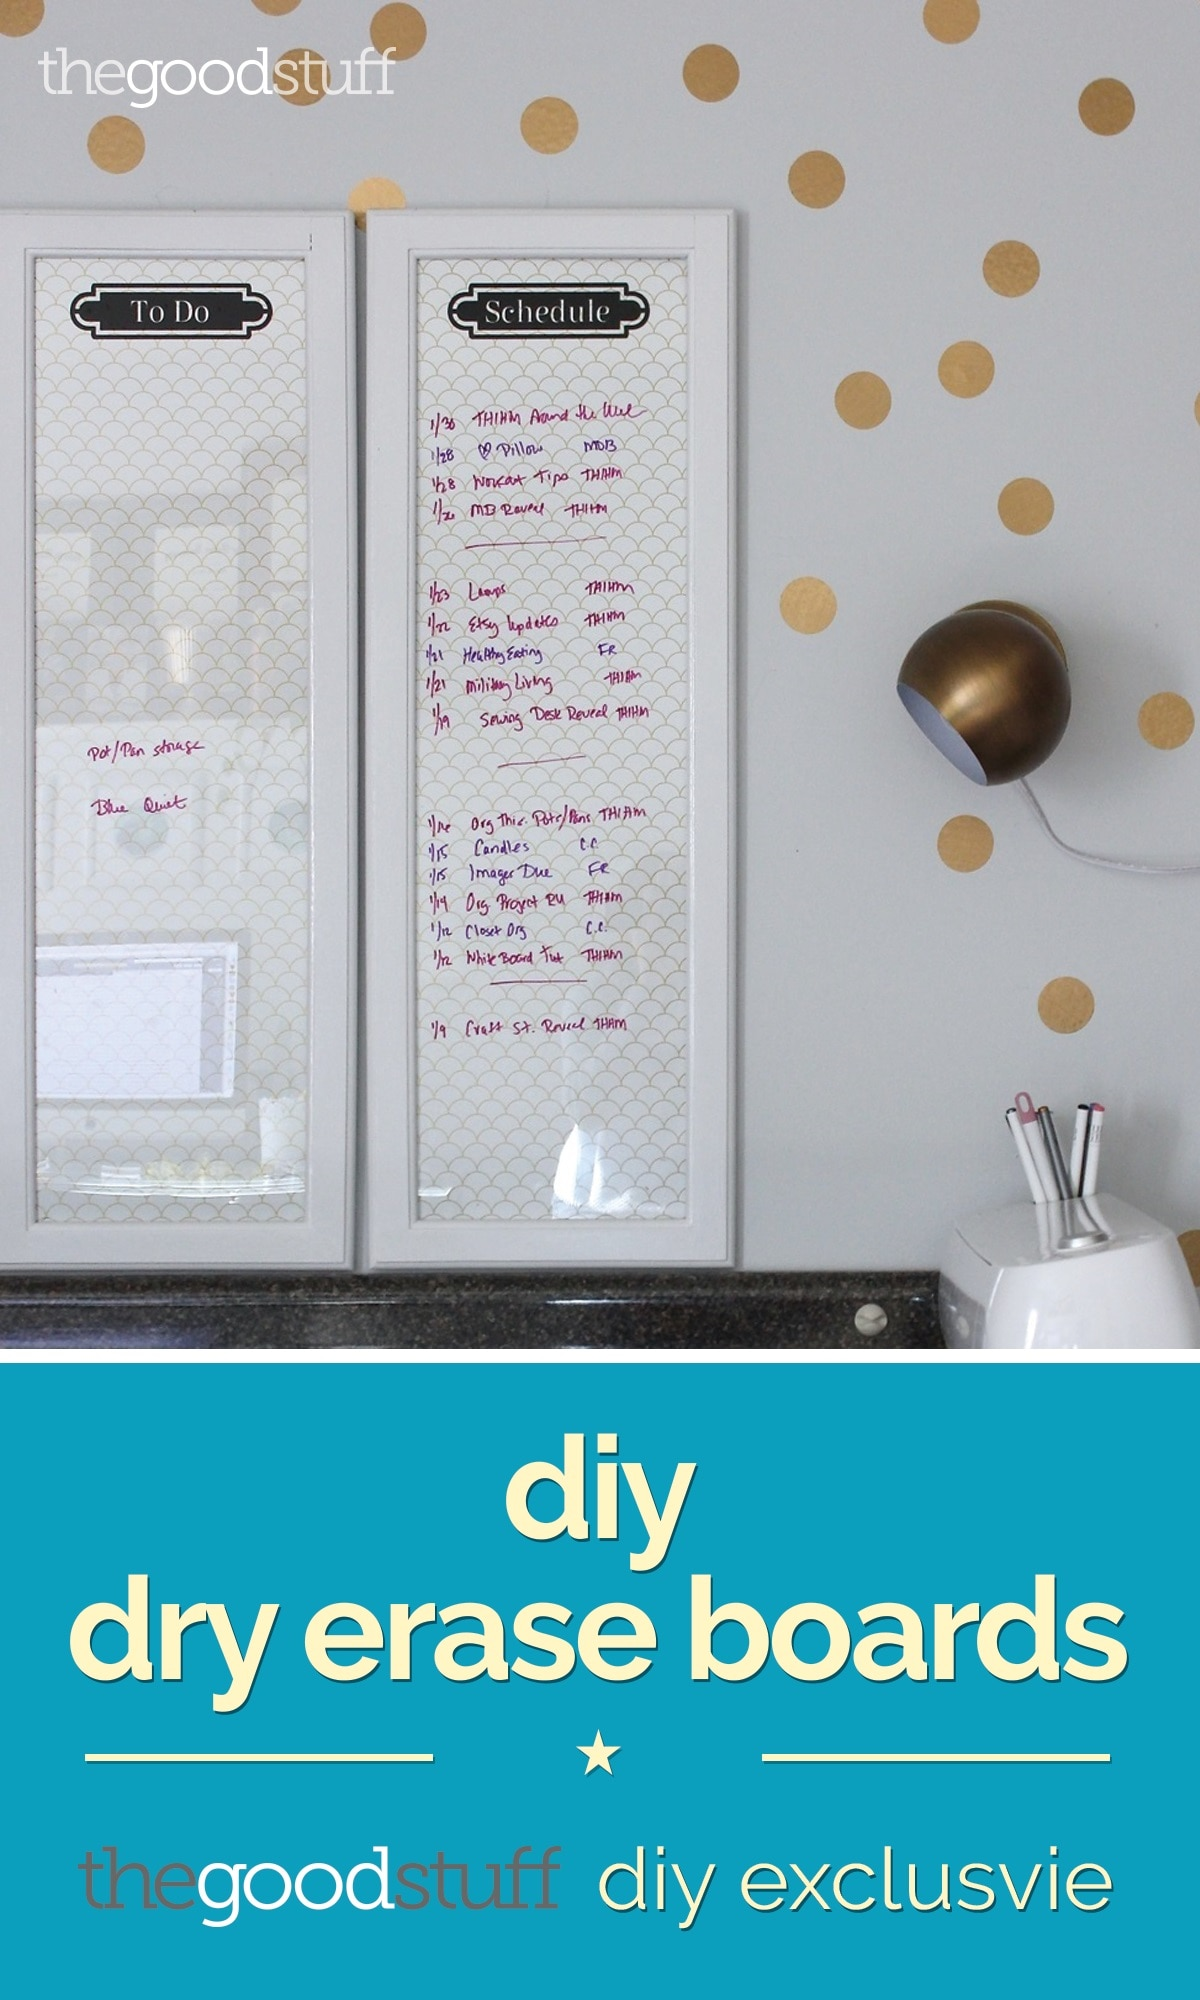 diy-dry-erase-boards